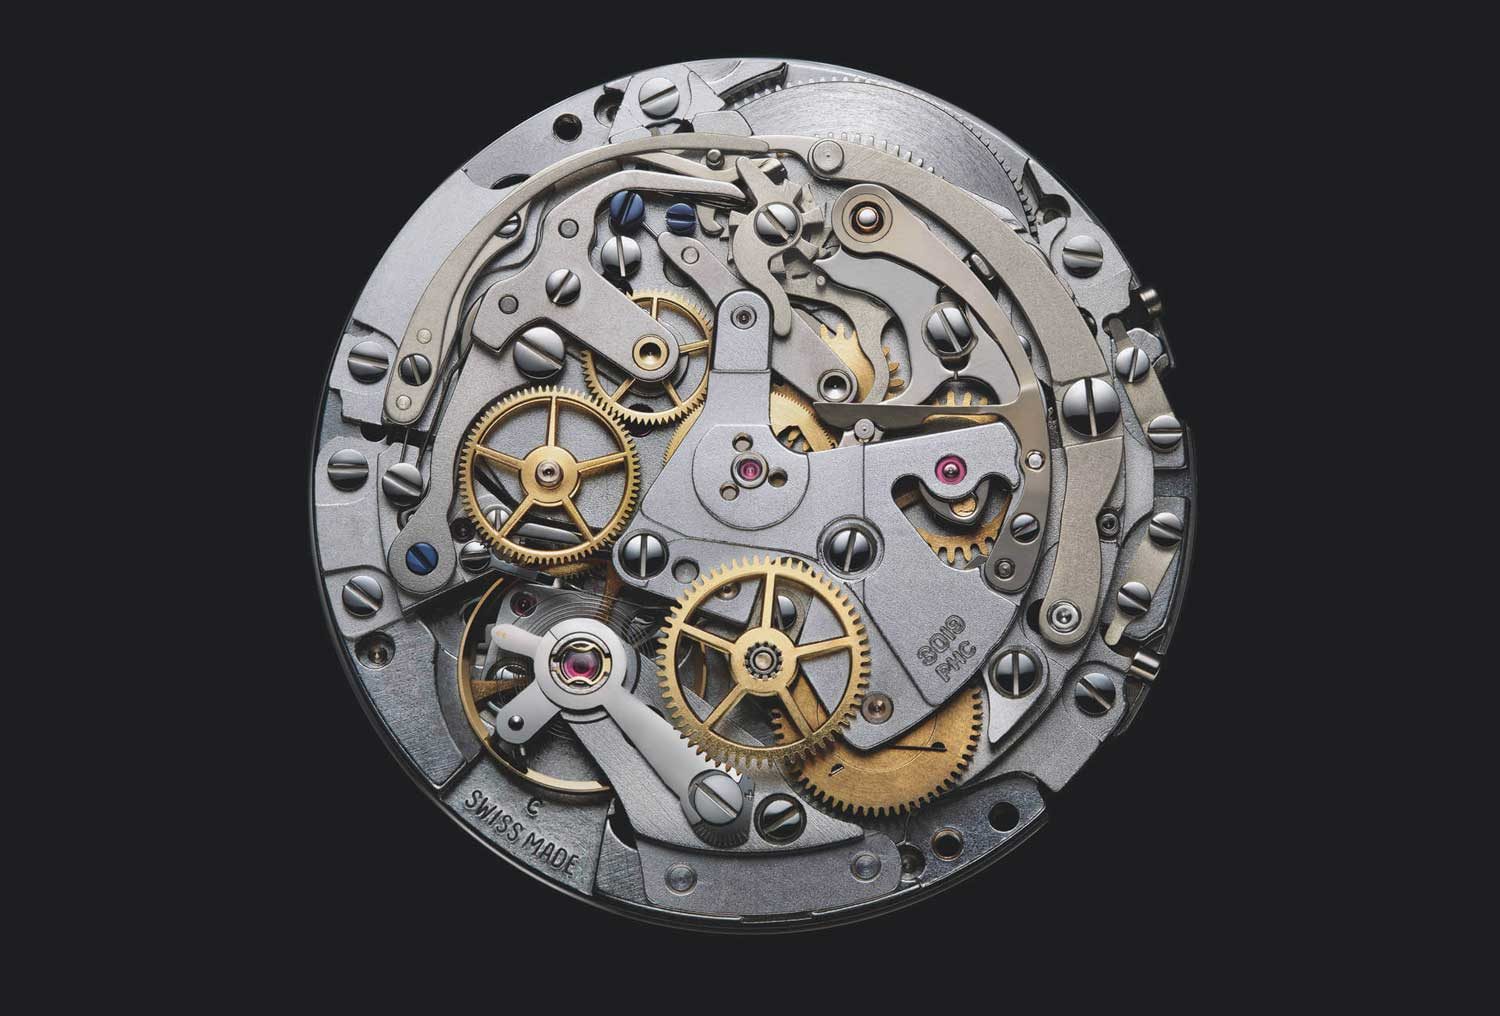 When Zenith announced the El Primero in 1969, it was the world's first fully integrated self-winding chronograph movement